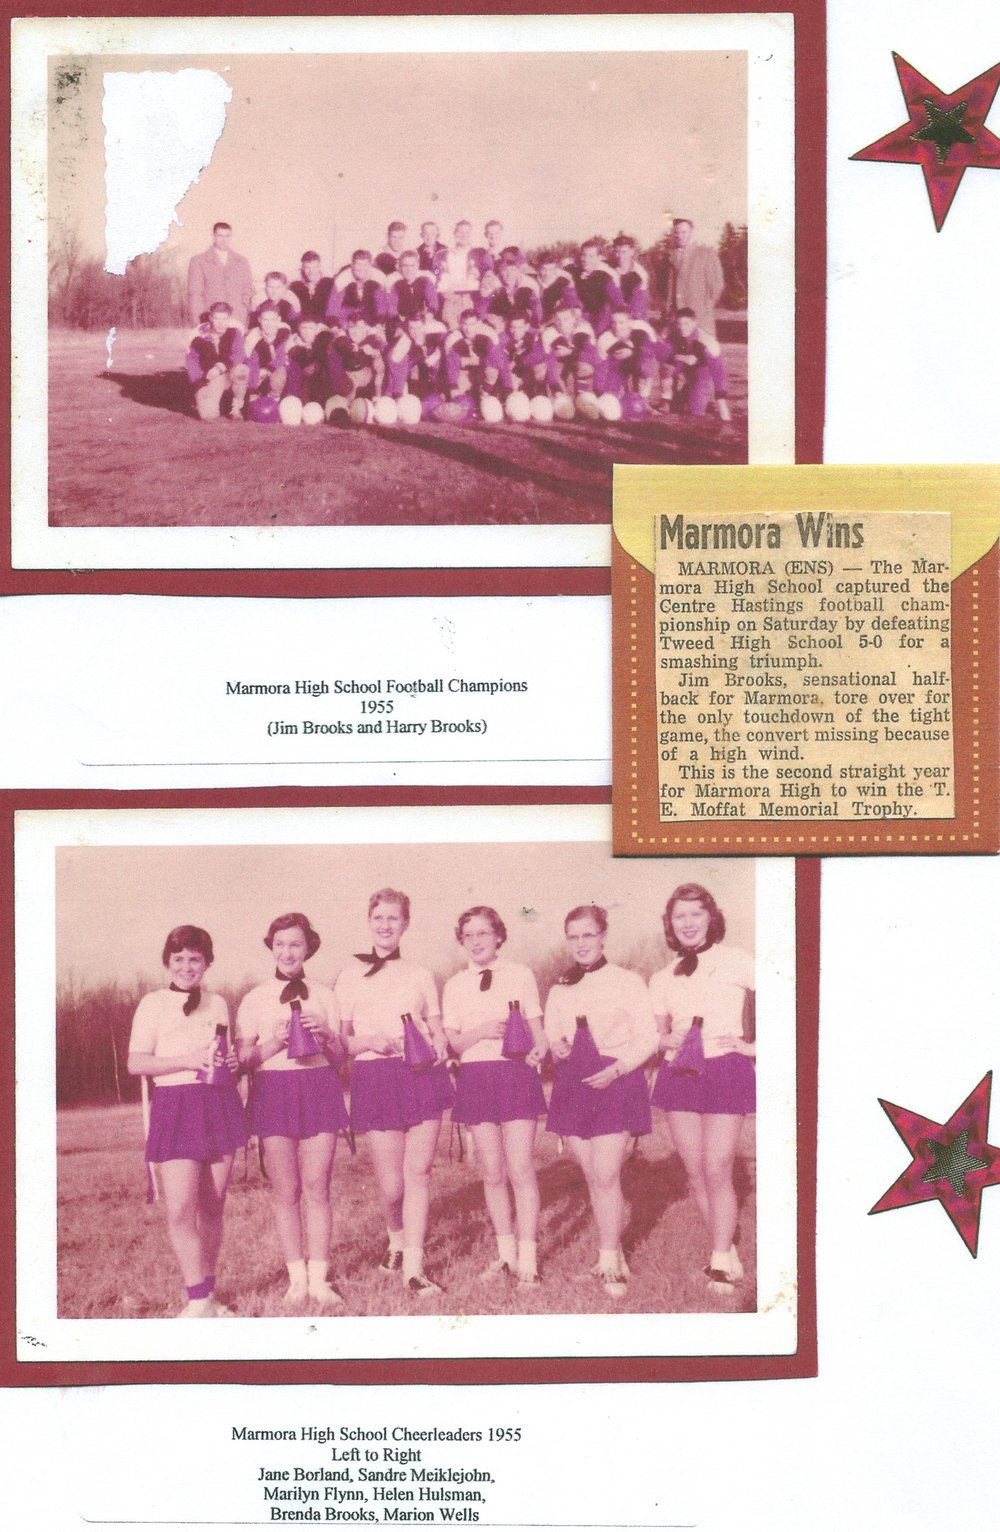 Marmora Footballs champions 1955, Jim Brooks, Harry Brooks, & cheerleaders.jpg